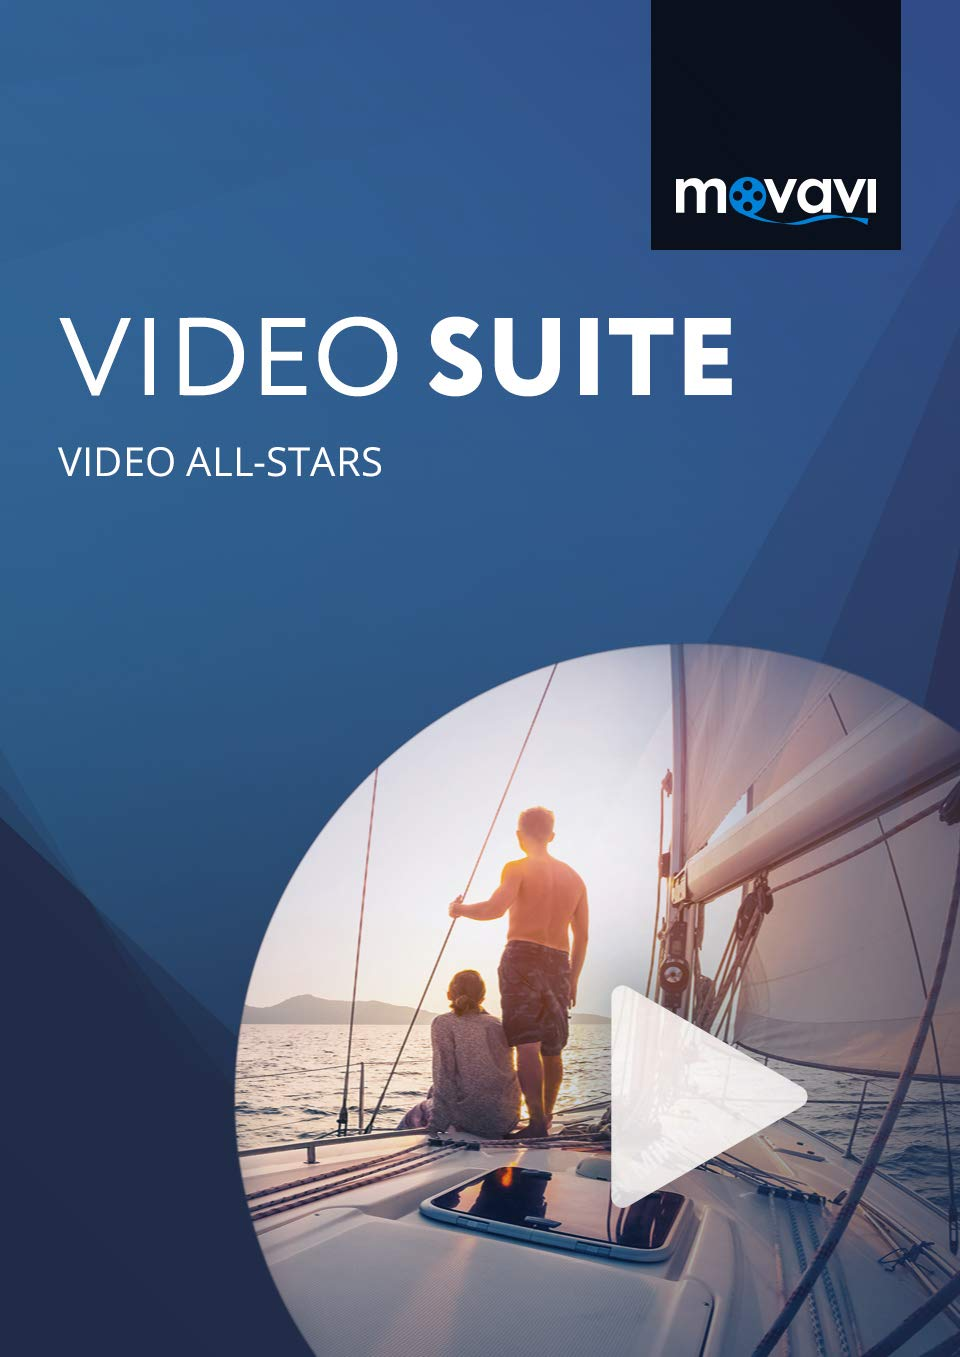 Movavi Video Suite 18 Personal [PC Download] by Movavi Software Inc